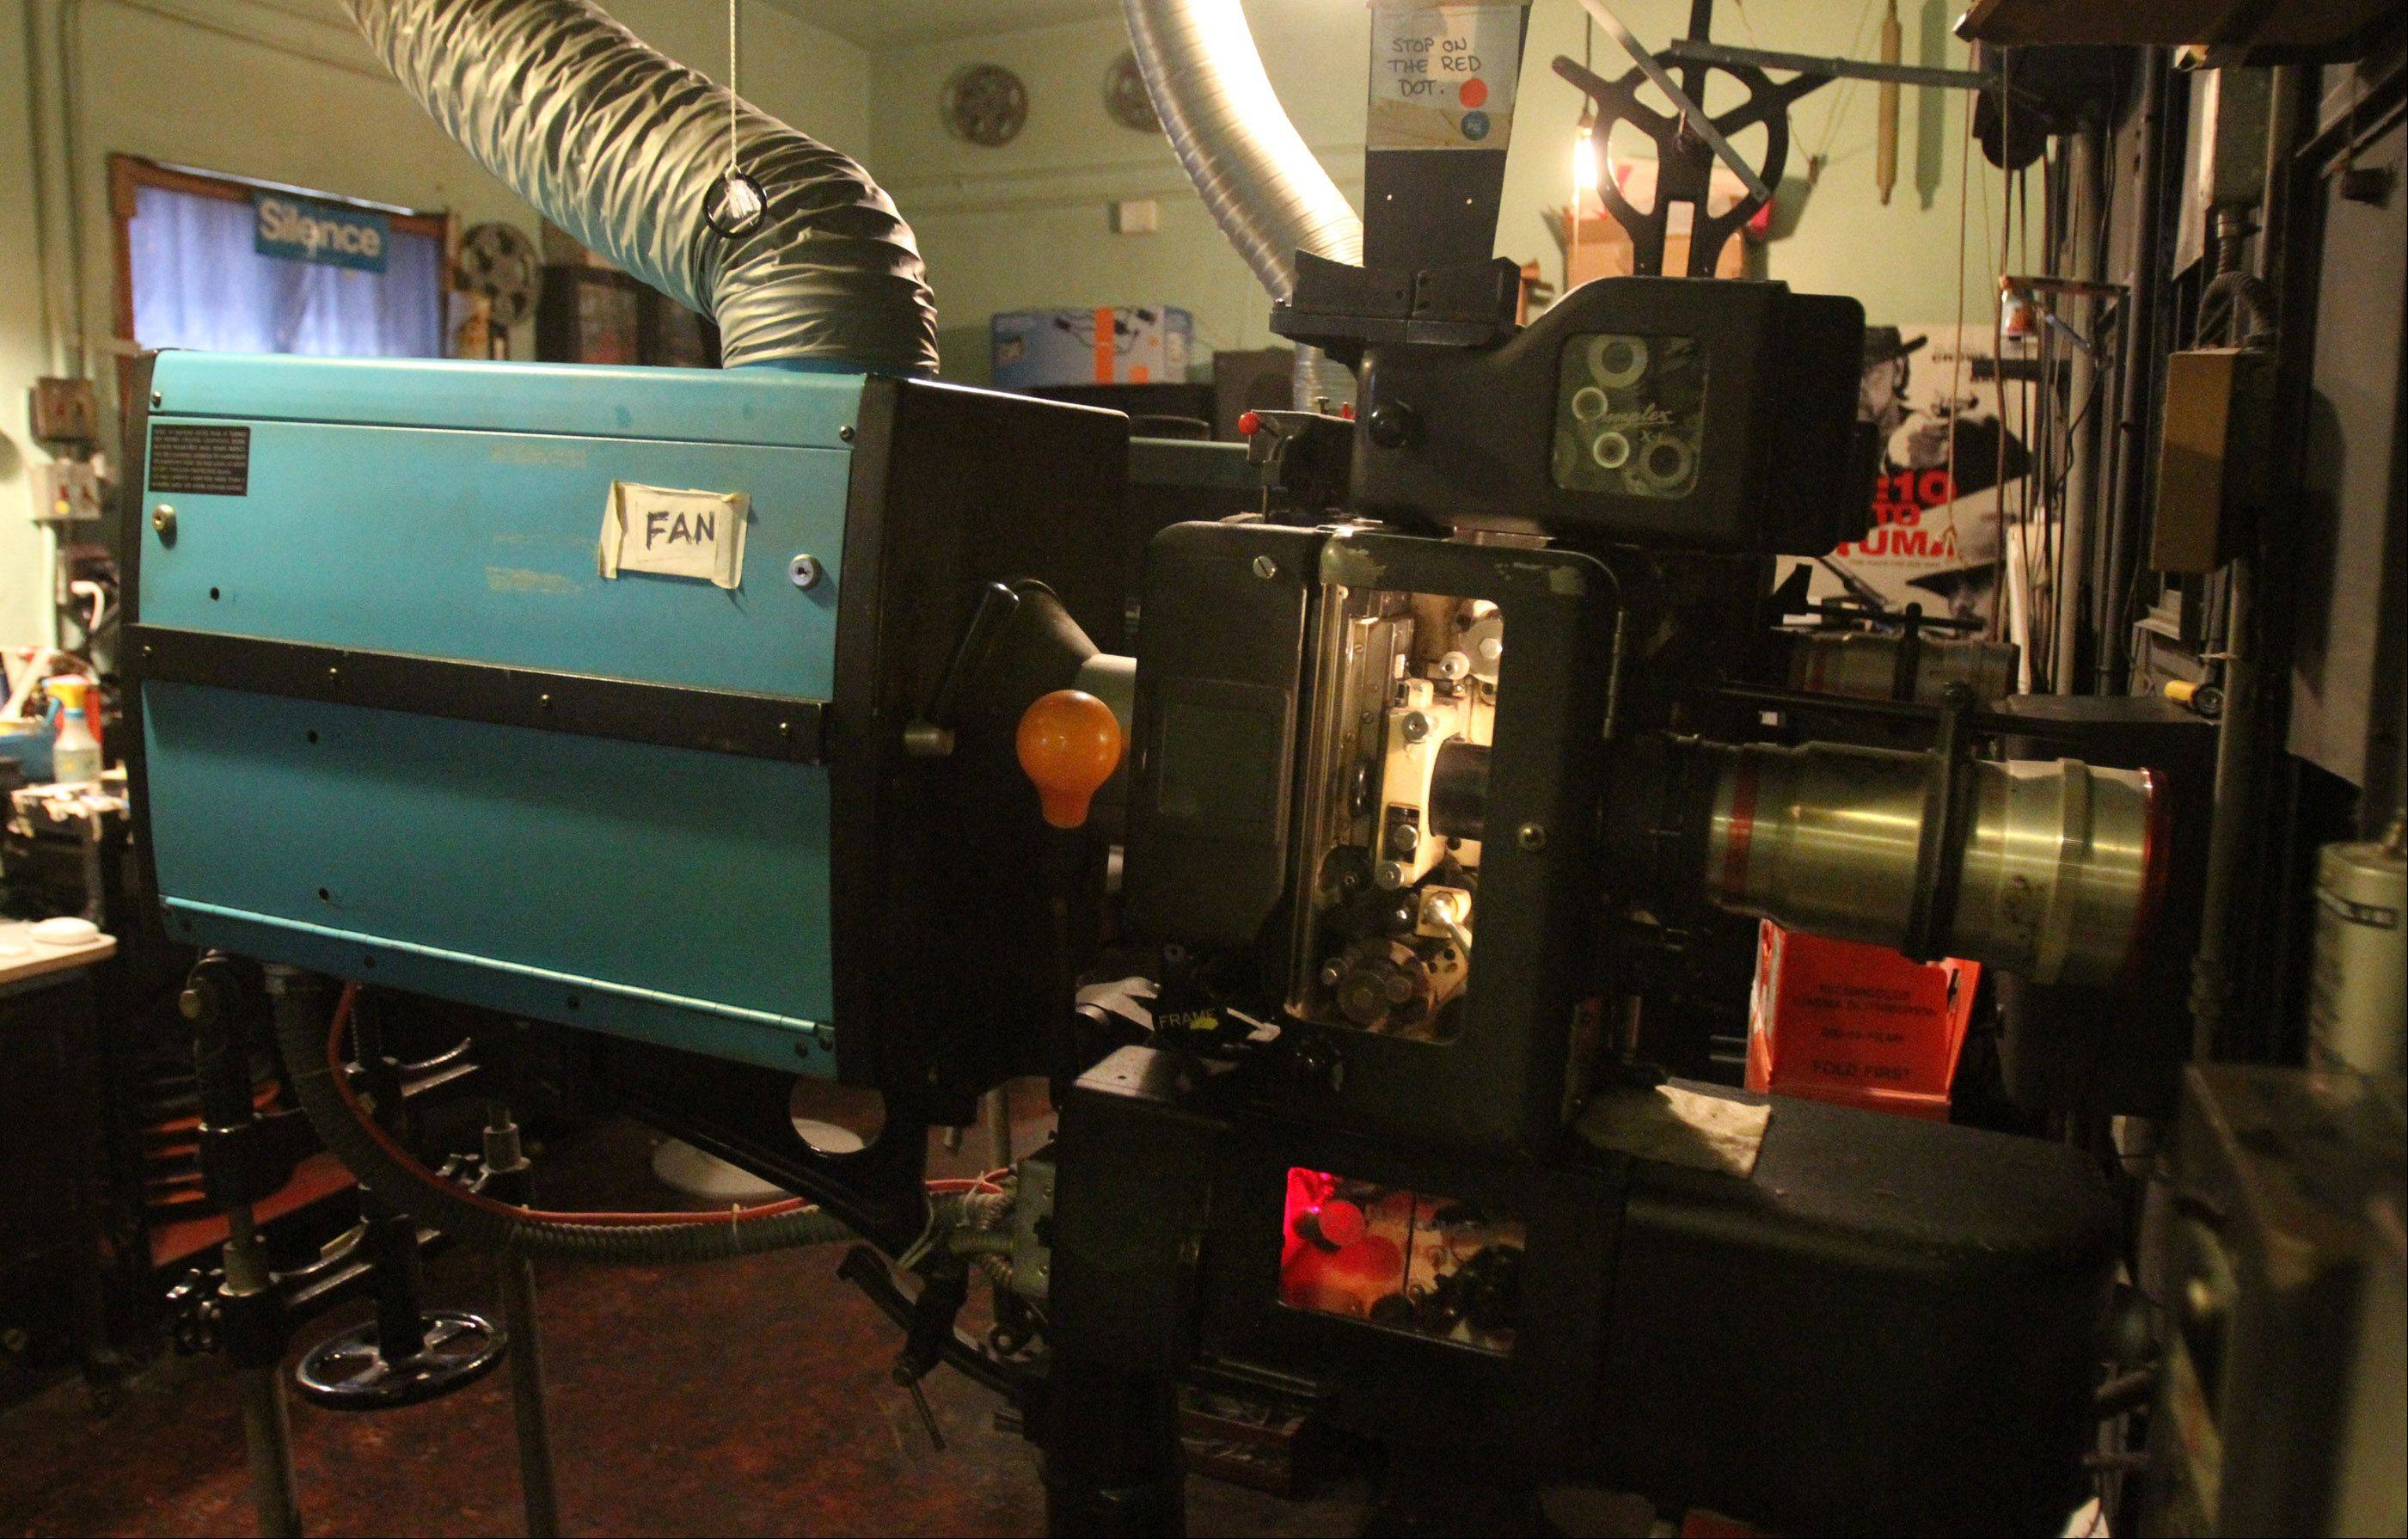 The Catlow's film projection room with the 10940-50s Simplex XL film projector that is now being used at the theater in Barrington.